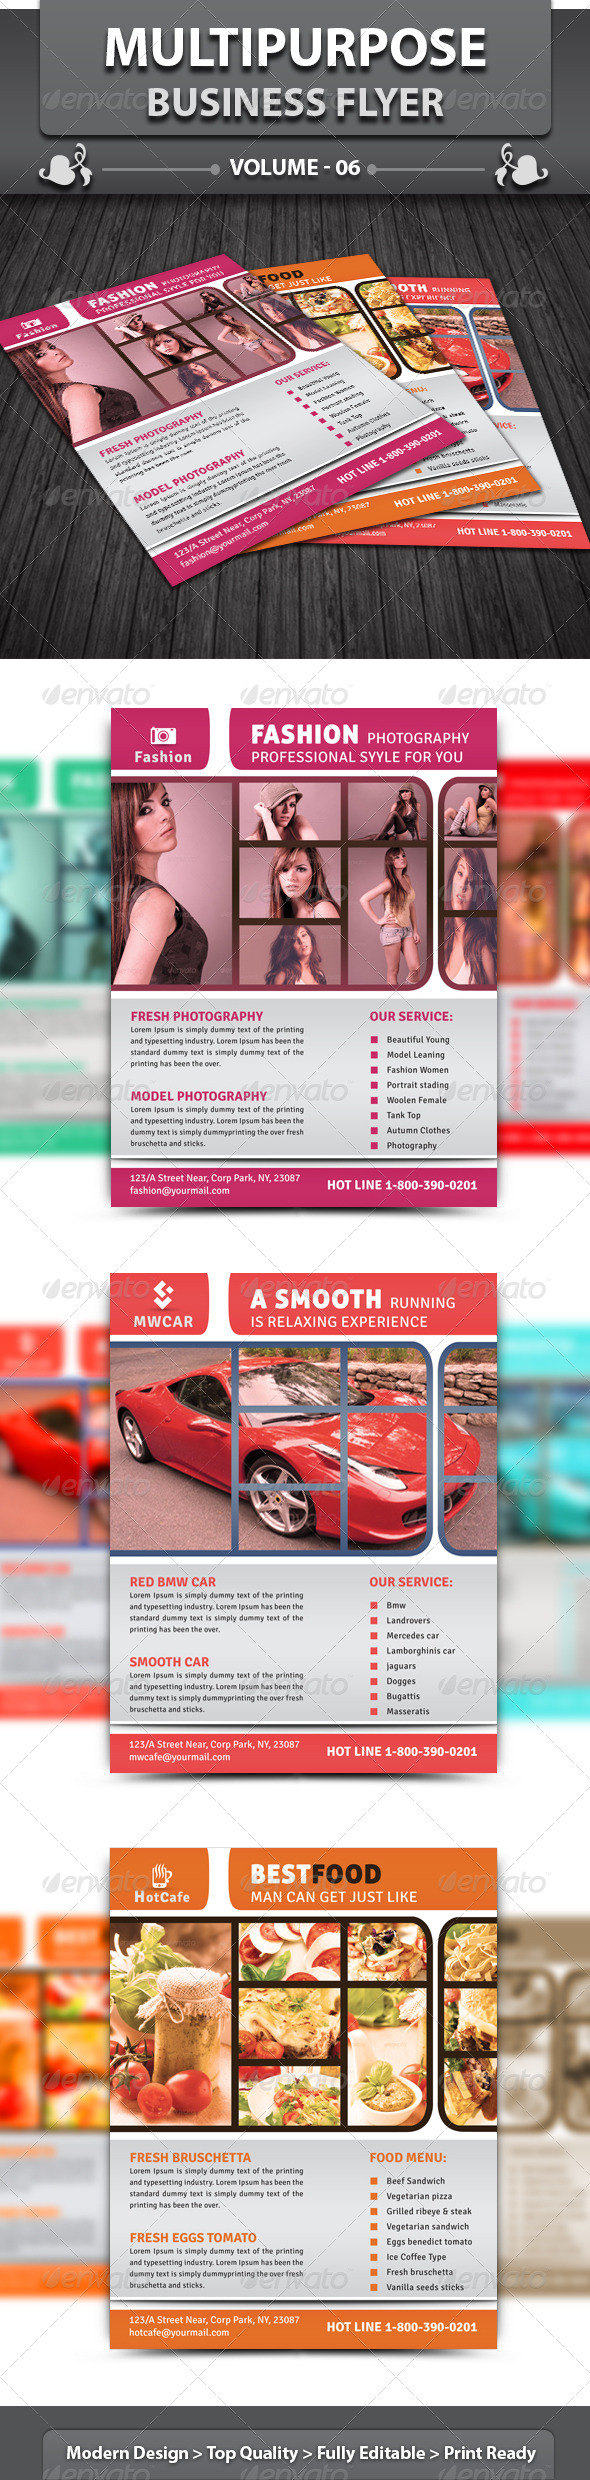 GraphicRiver Multipurpose Business Flyer v6 5904529